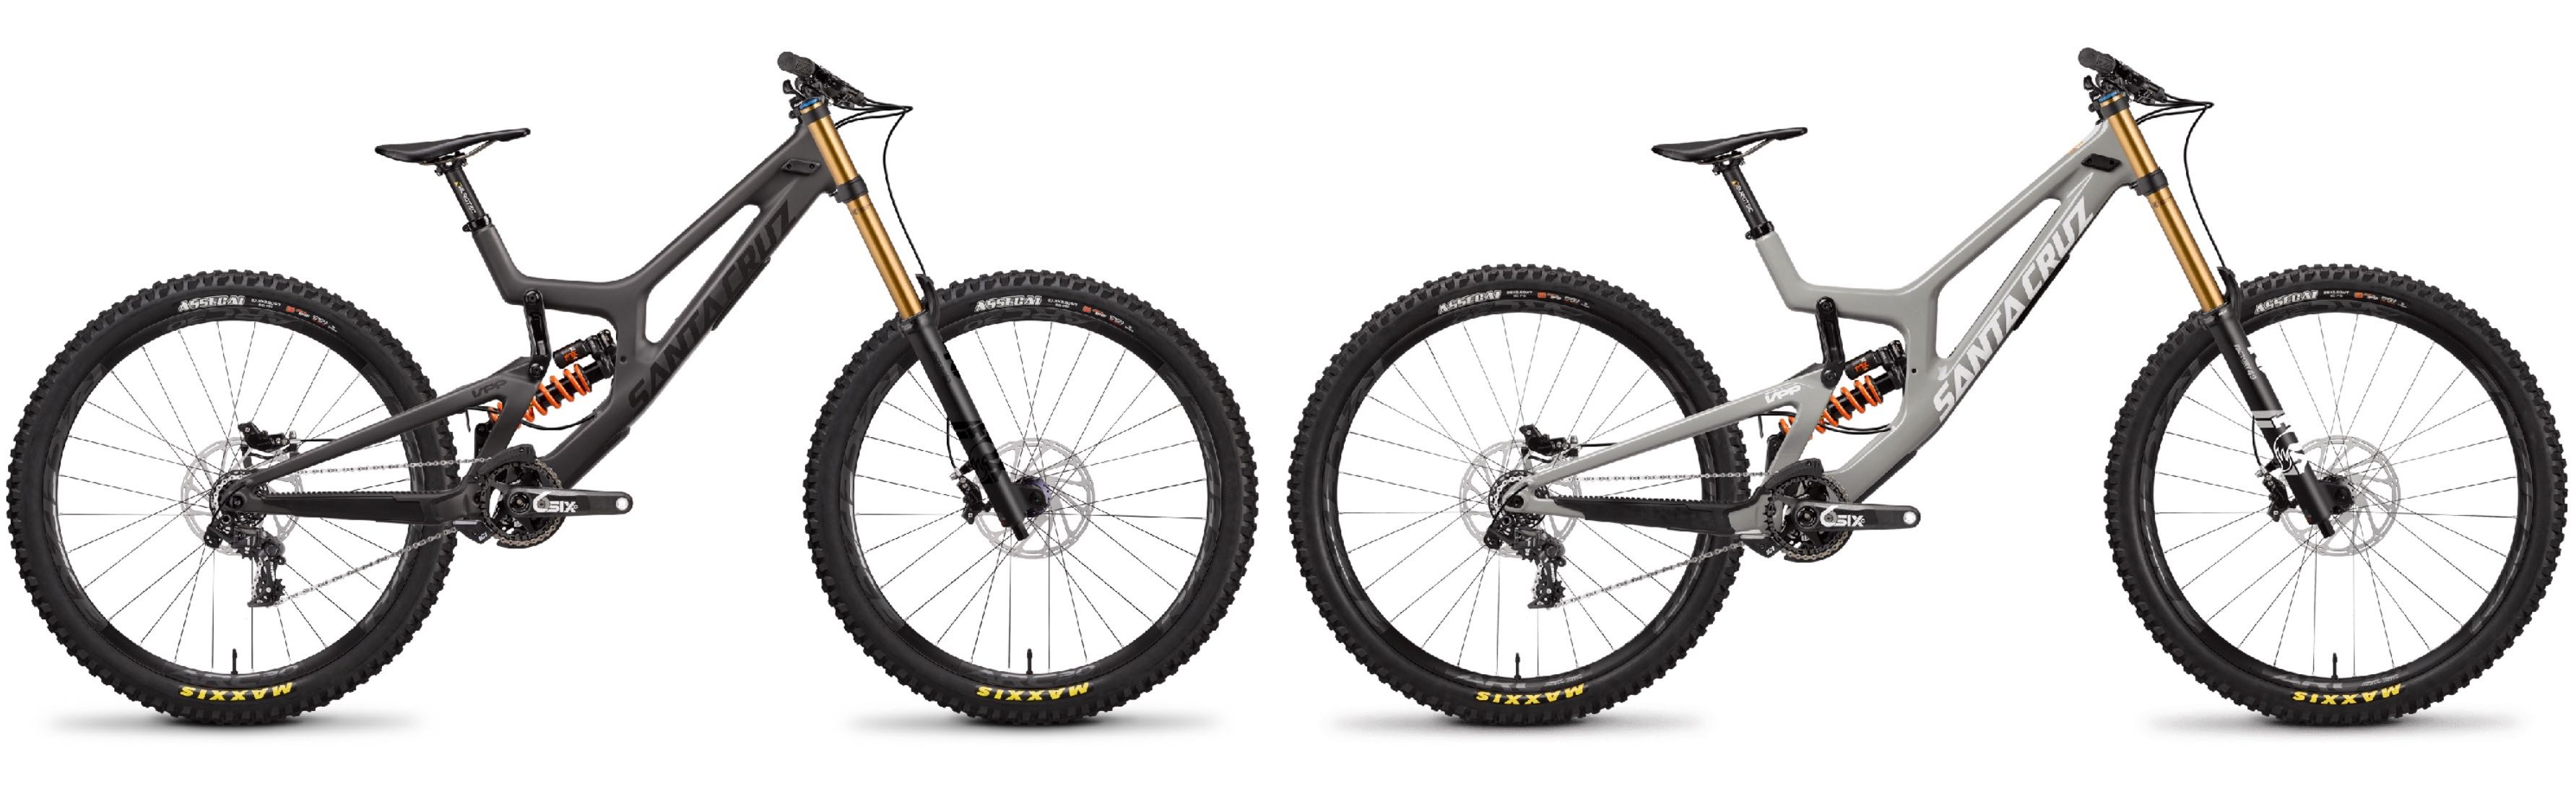 The New Santa Cruz V10 Downhill MTB bike